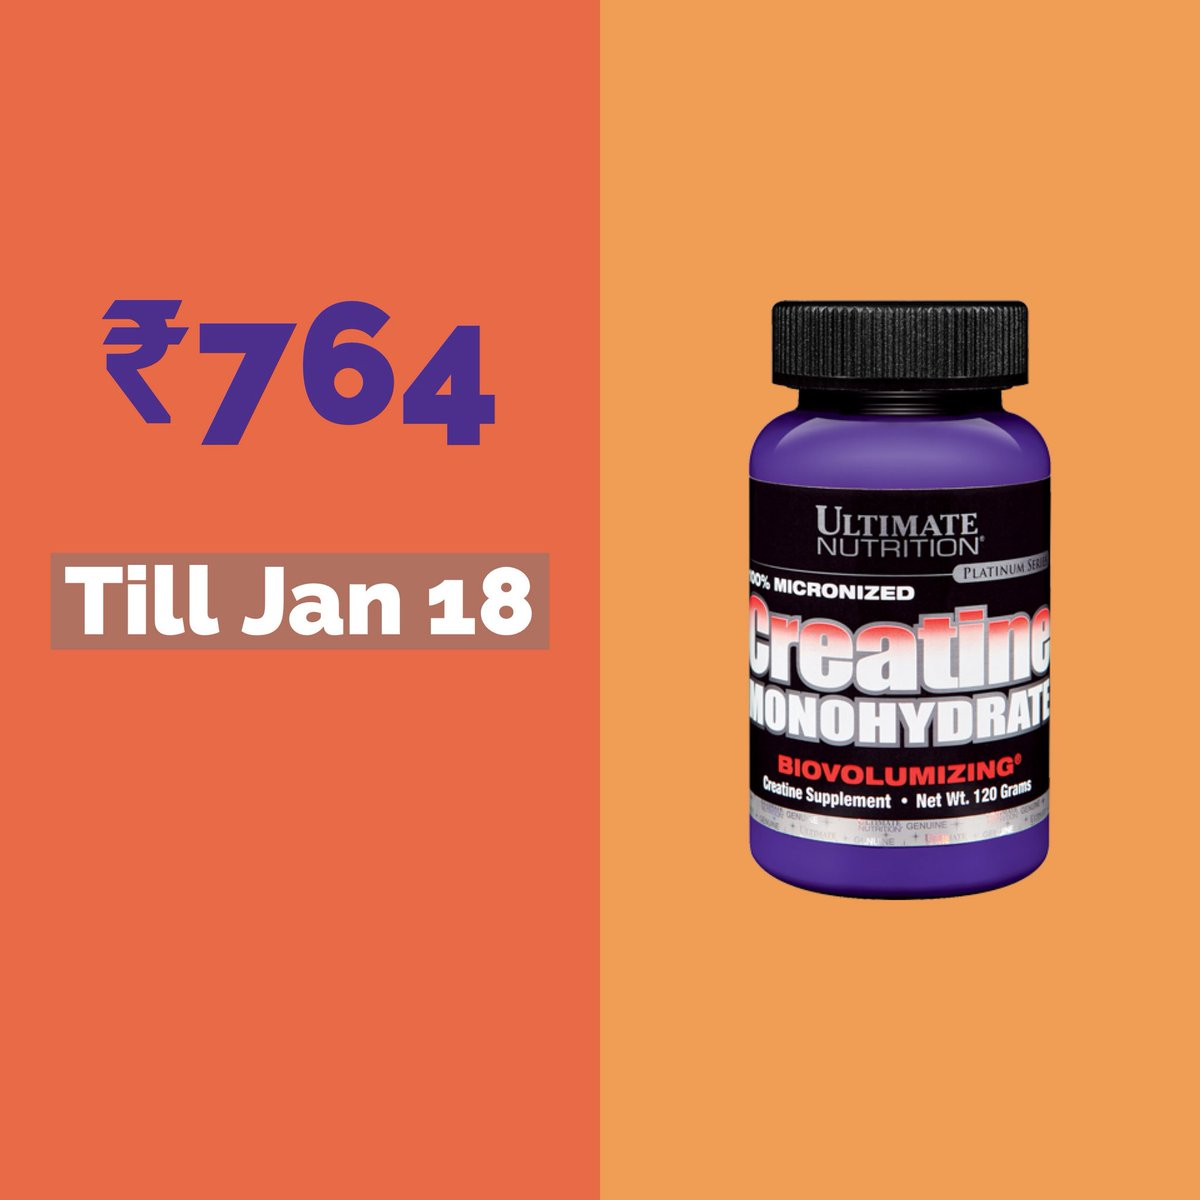 Acacia World On Twitter Ultimatesale On Acacia World Ultimate Nutrition Creatine 15 Extra Off Buy It Now At Just 764 No Coupon Required Just Add The Product To Cart To Avail